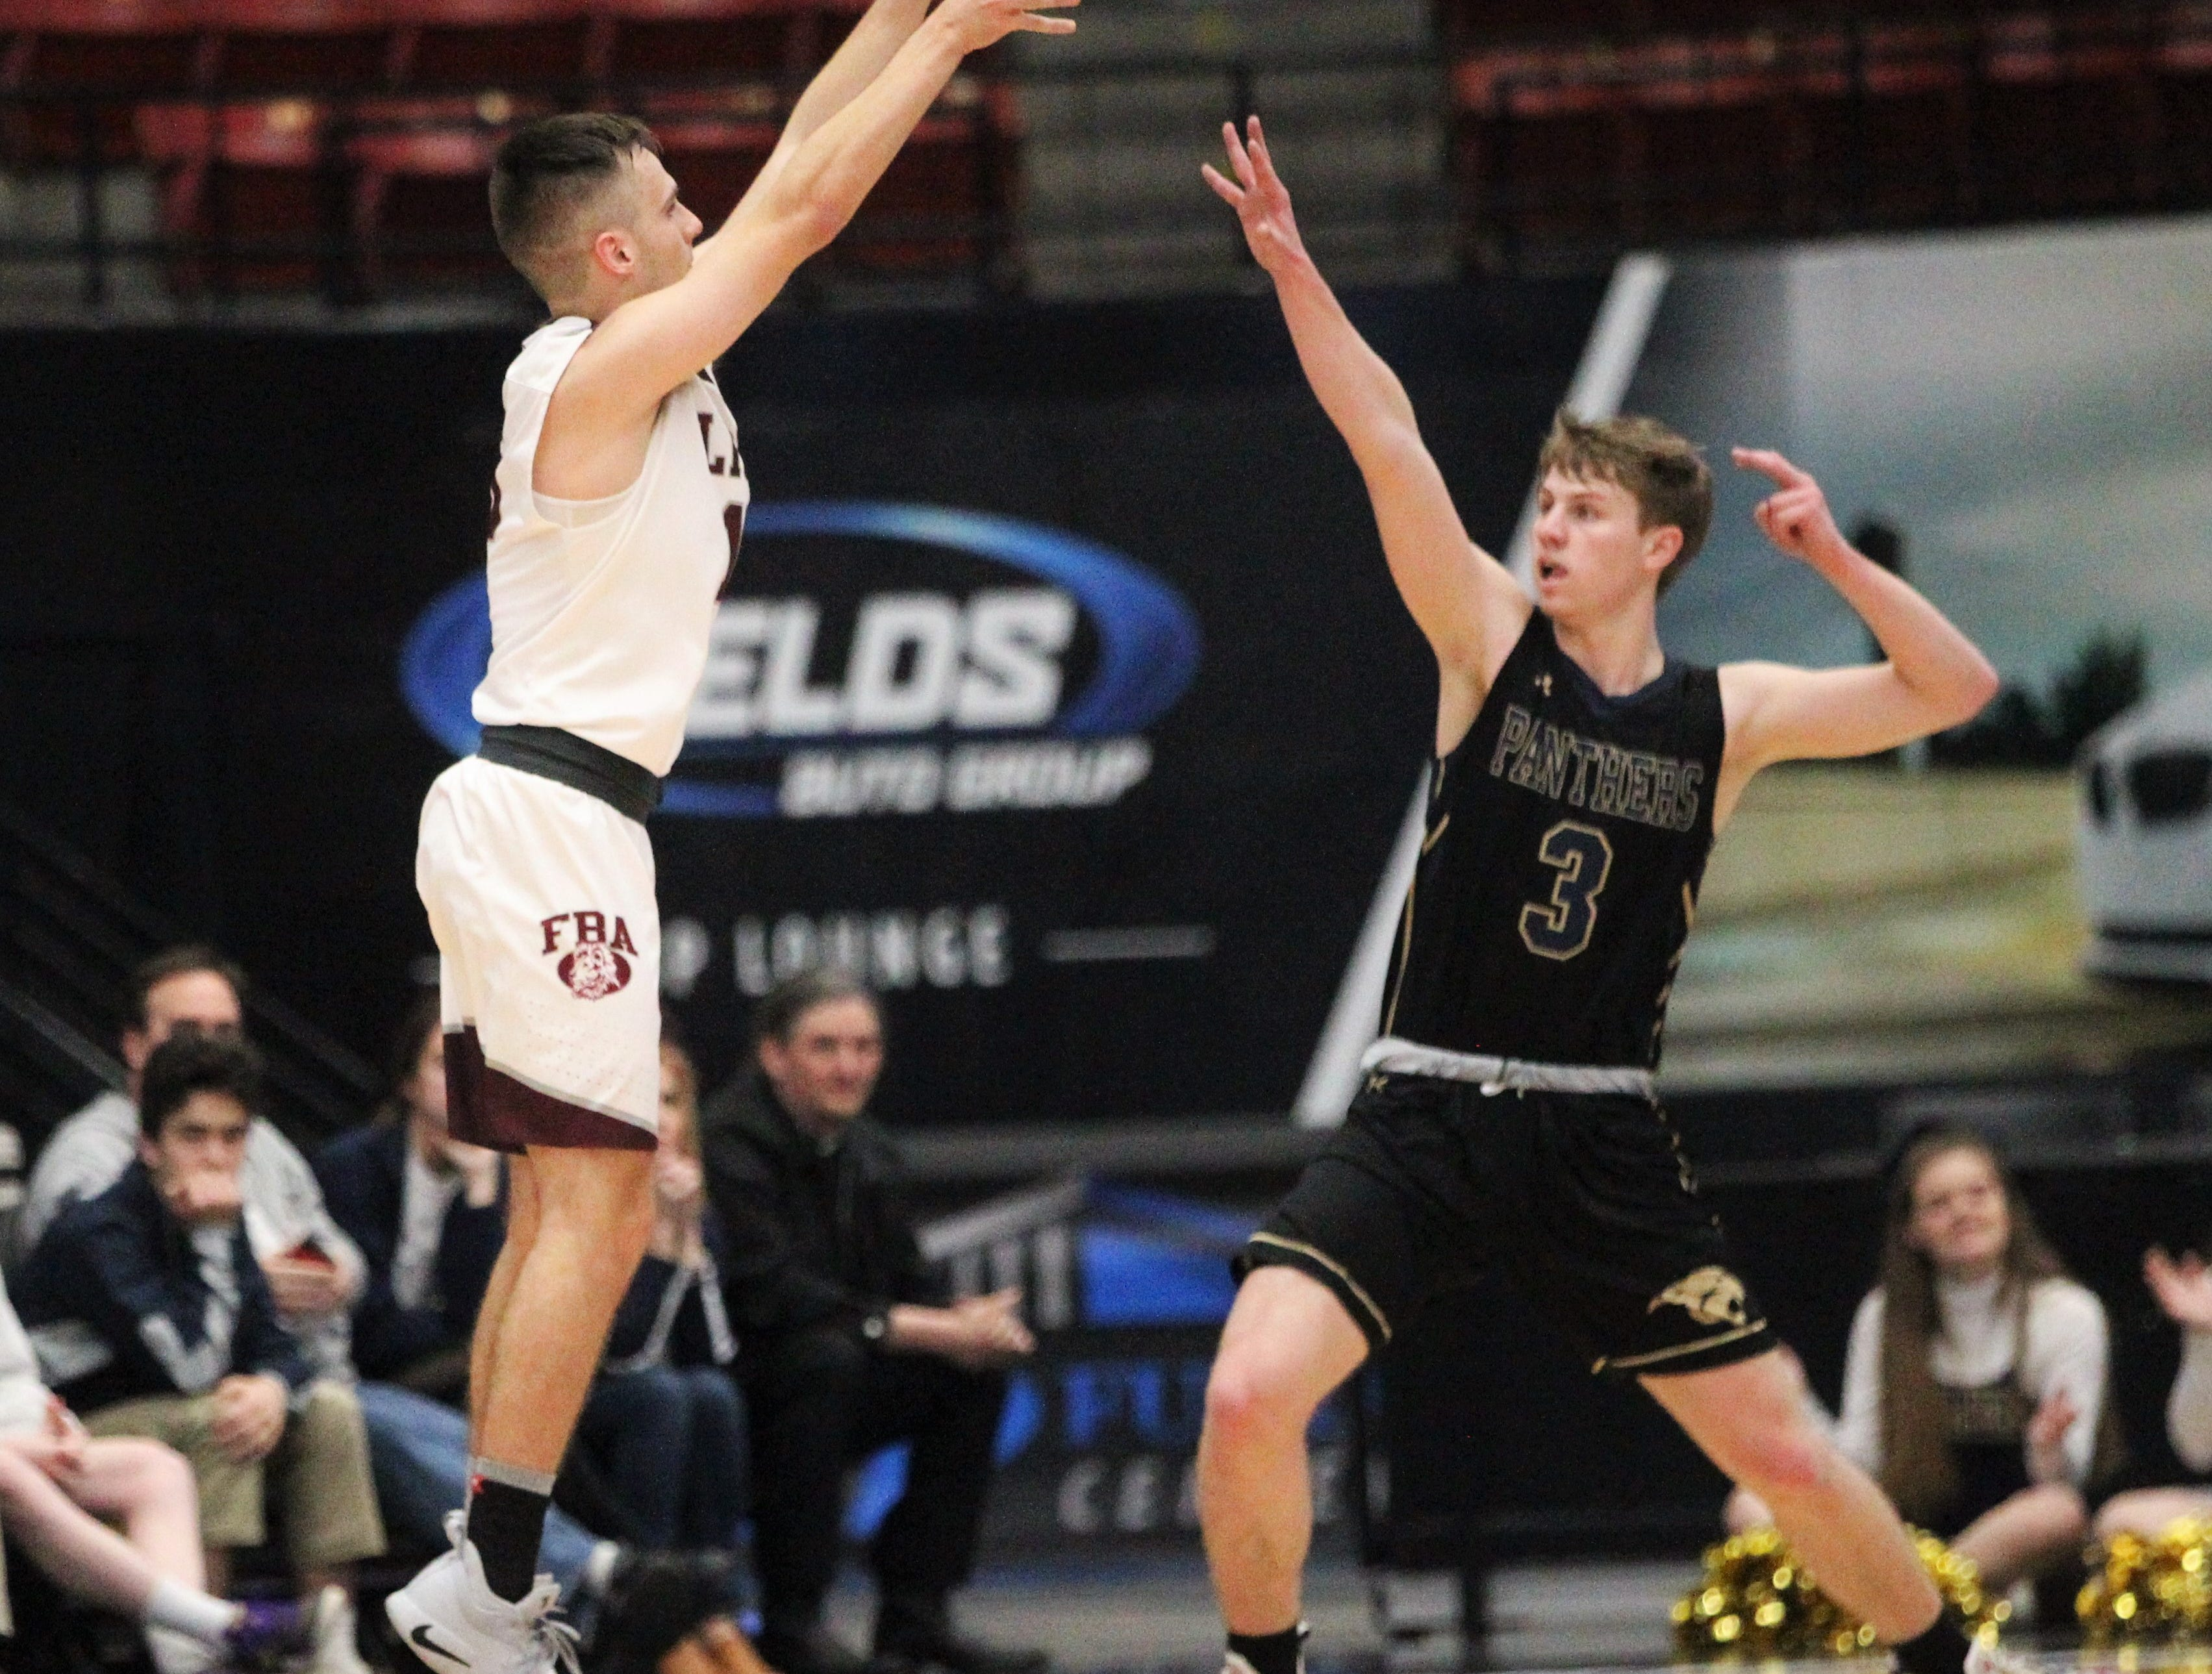 First Baptist Academy's Preston Urbancic shoots a 3-pointer as St. John Paul II beat FBA 55-37 during a Class 3A state championship game at the RP Funding Center in Lakeland on March 4, 2019.